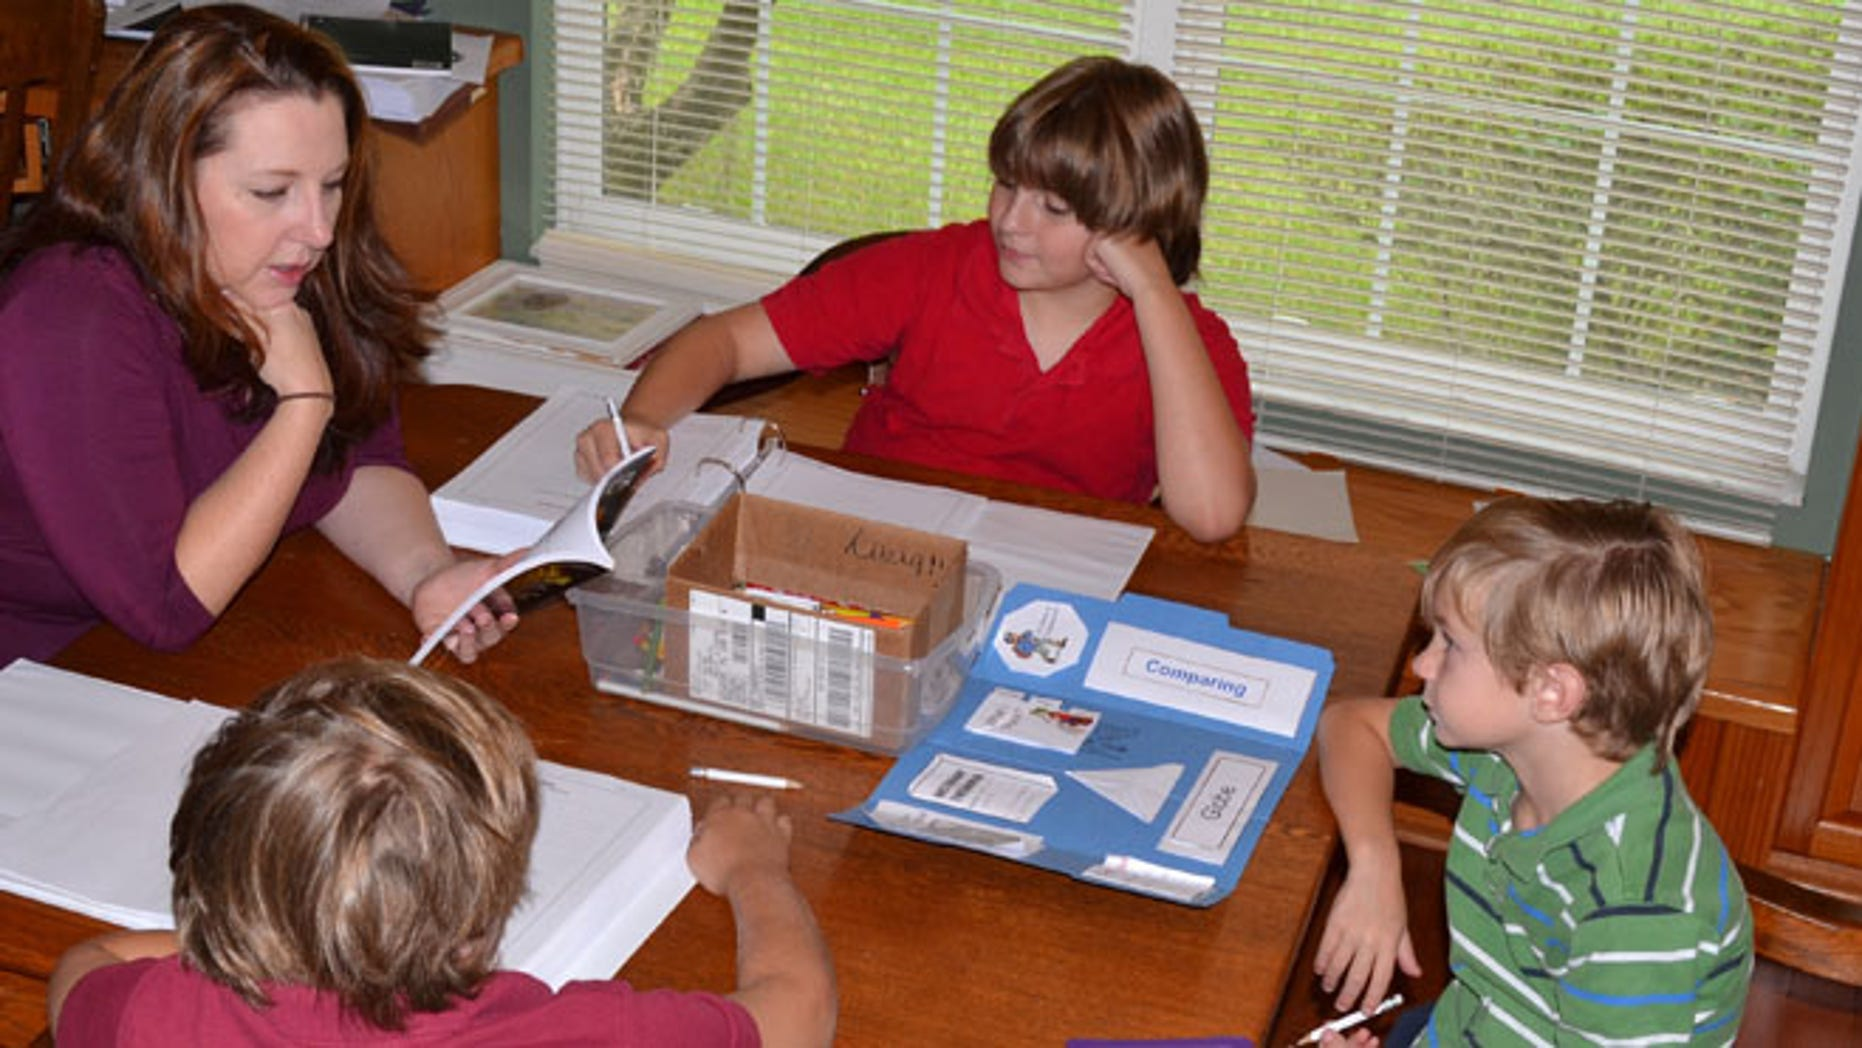 Jill Finnerty Ricardo, of Dade City, Fla., is seen teaching a lesson at home to three of her children, Rhett, 9, Roman, 11, and Reagan, 6.